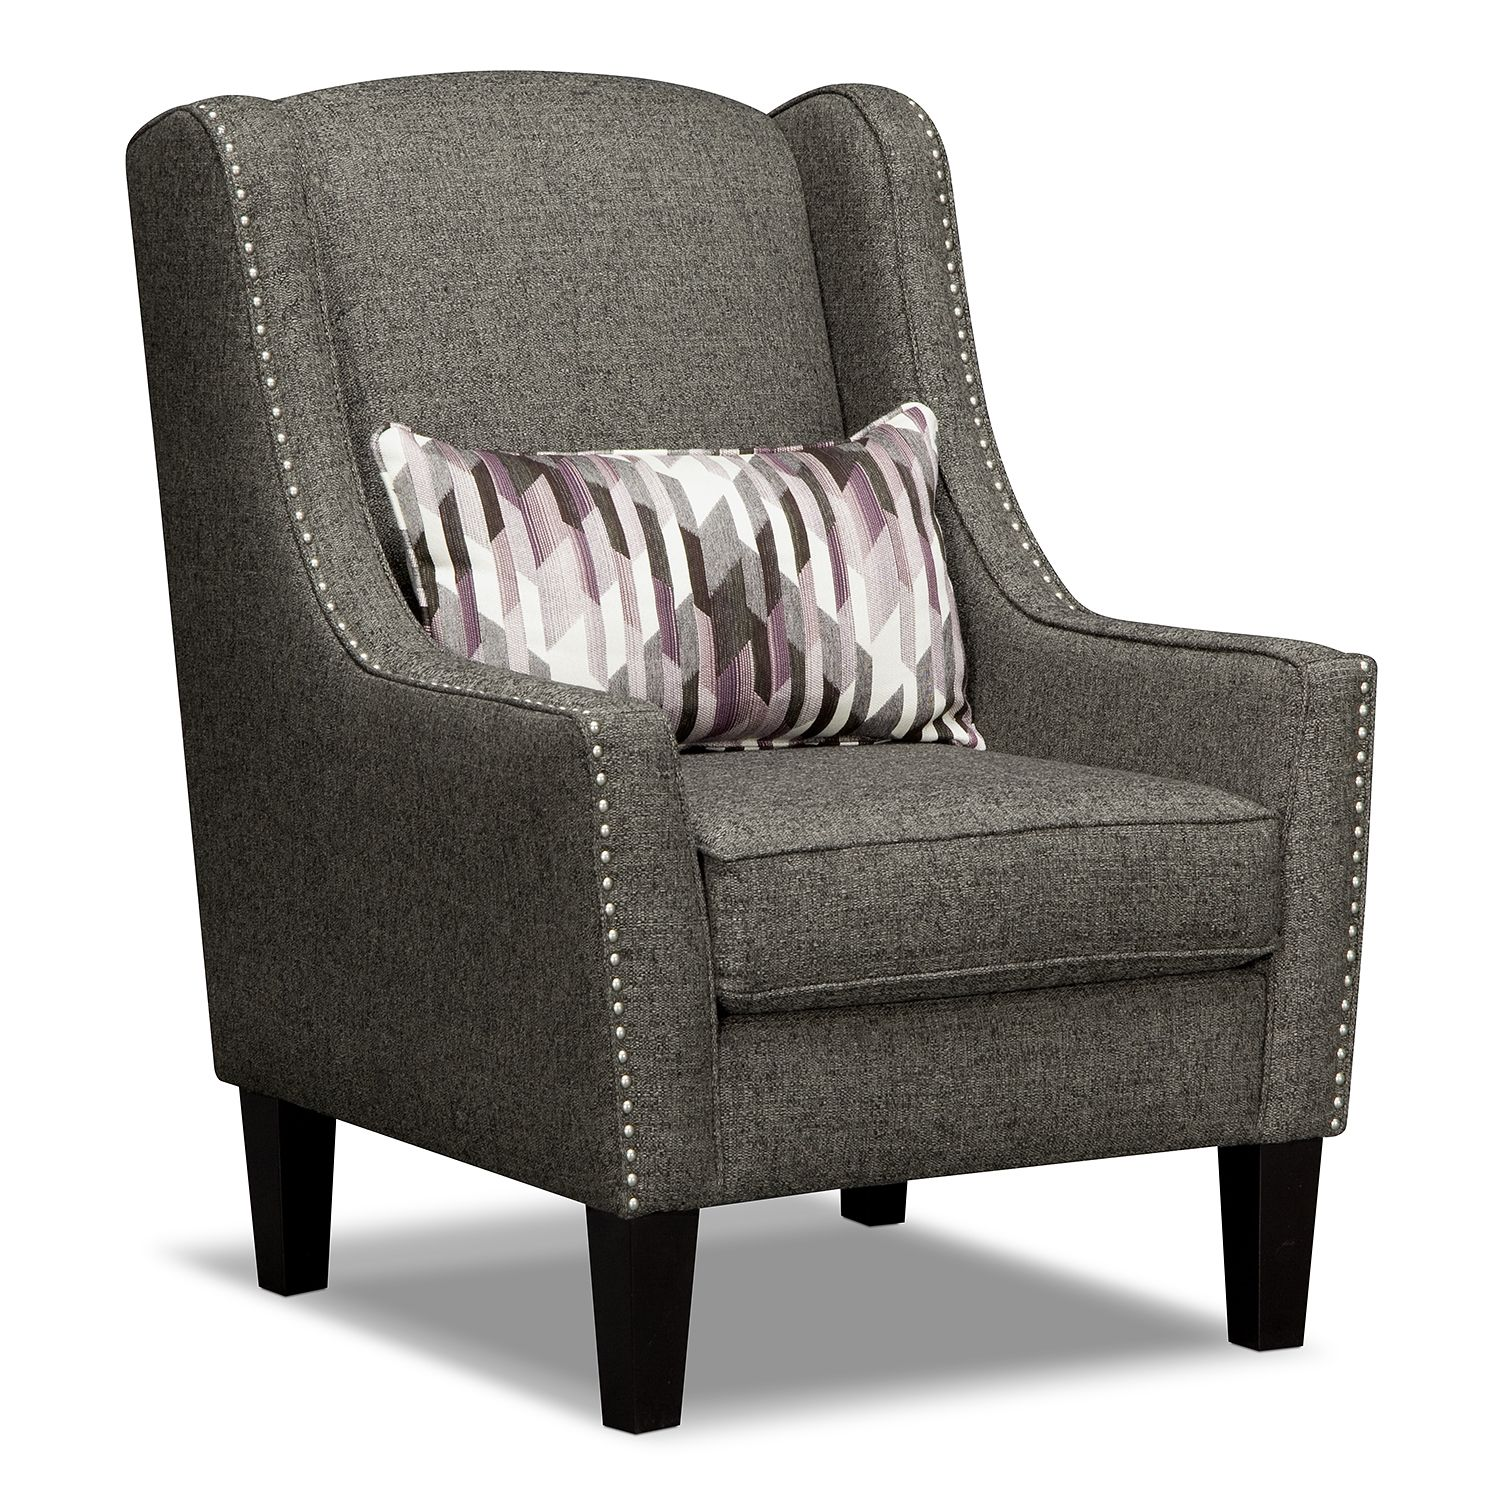 Furniture: Unique Small Accent Chairs With Arms Decor For ... Small Accent  ChairsLiving Room ... - Furniture: Unique Small Accent Chairs With Arms Decor For